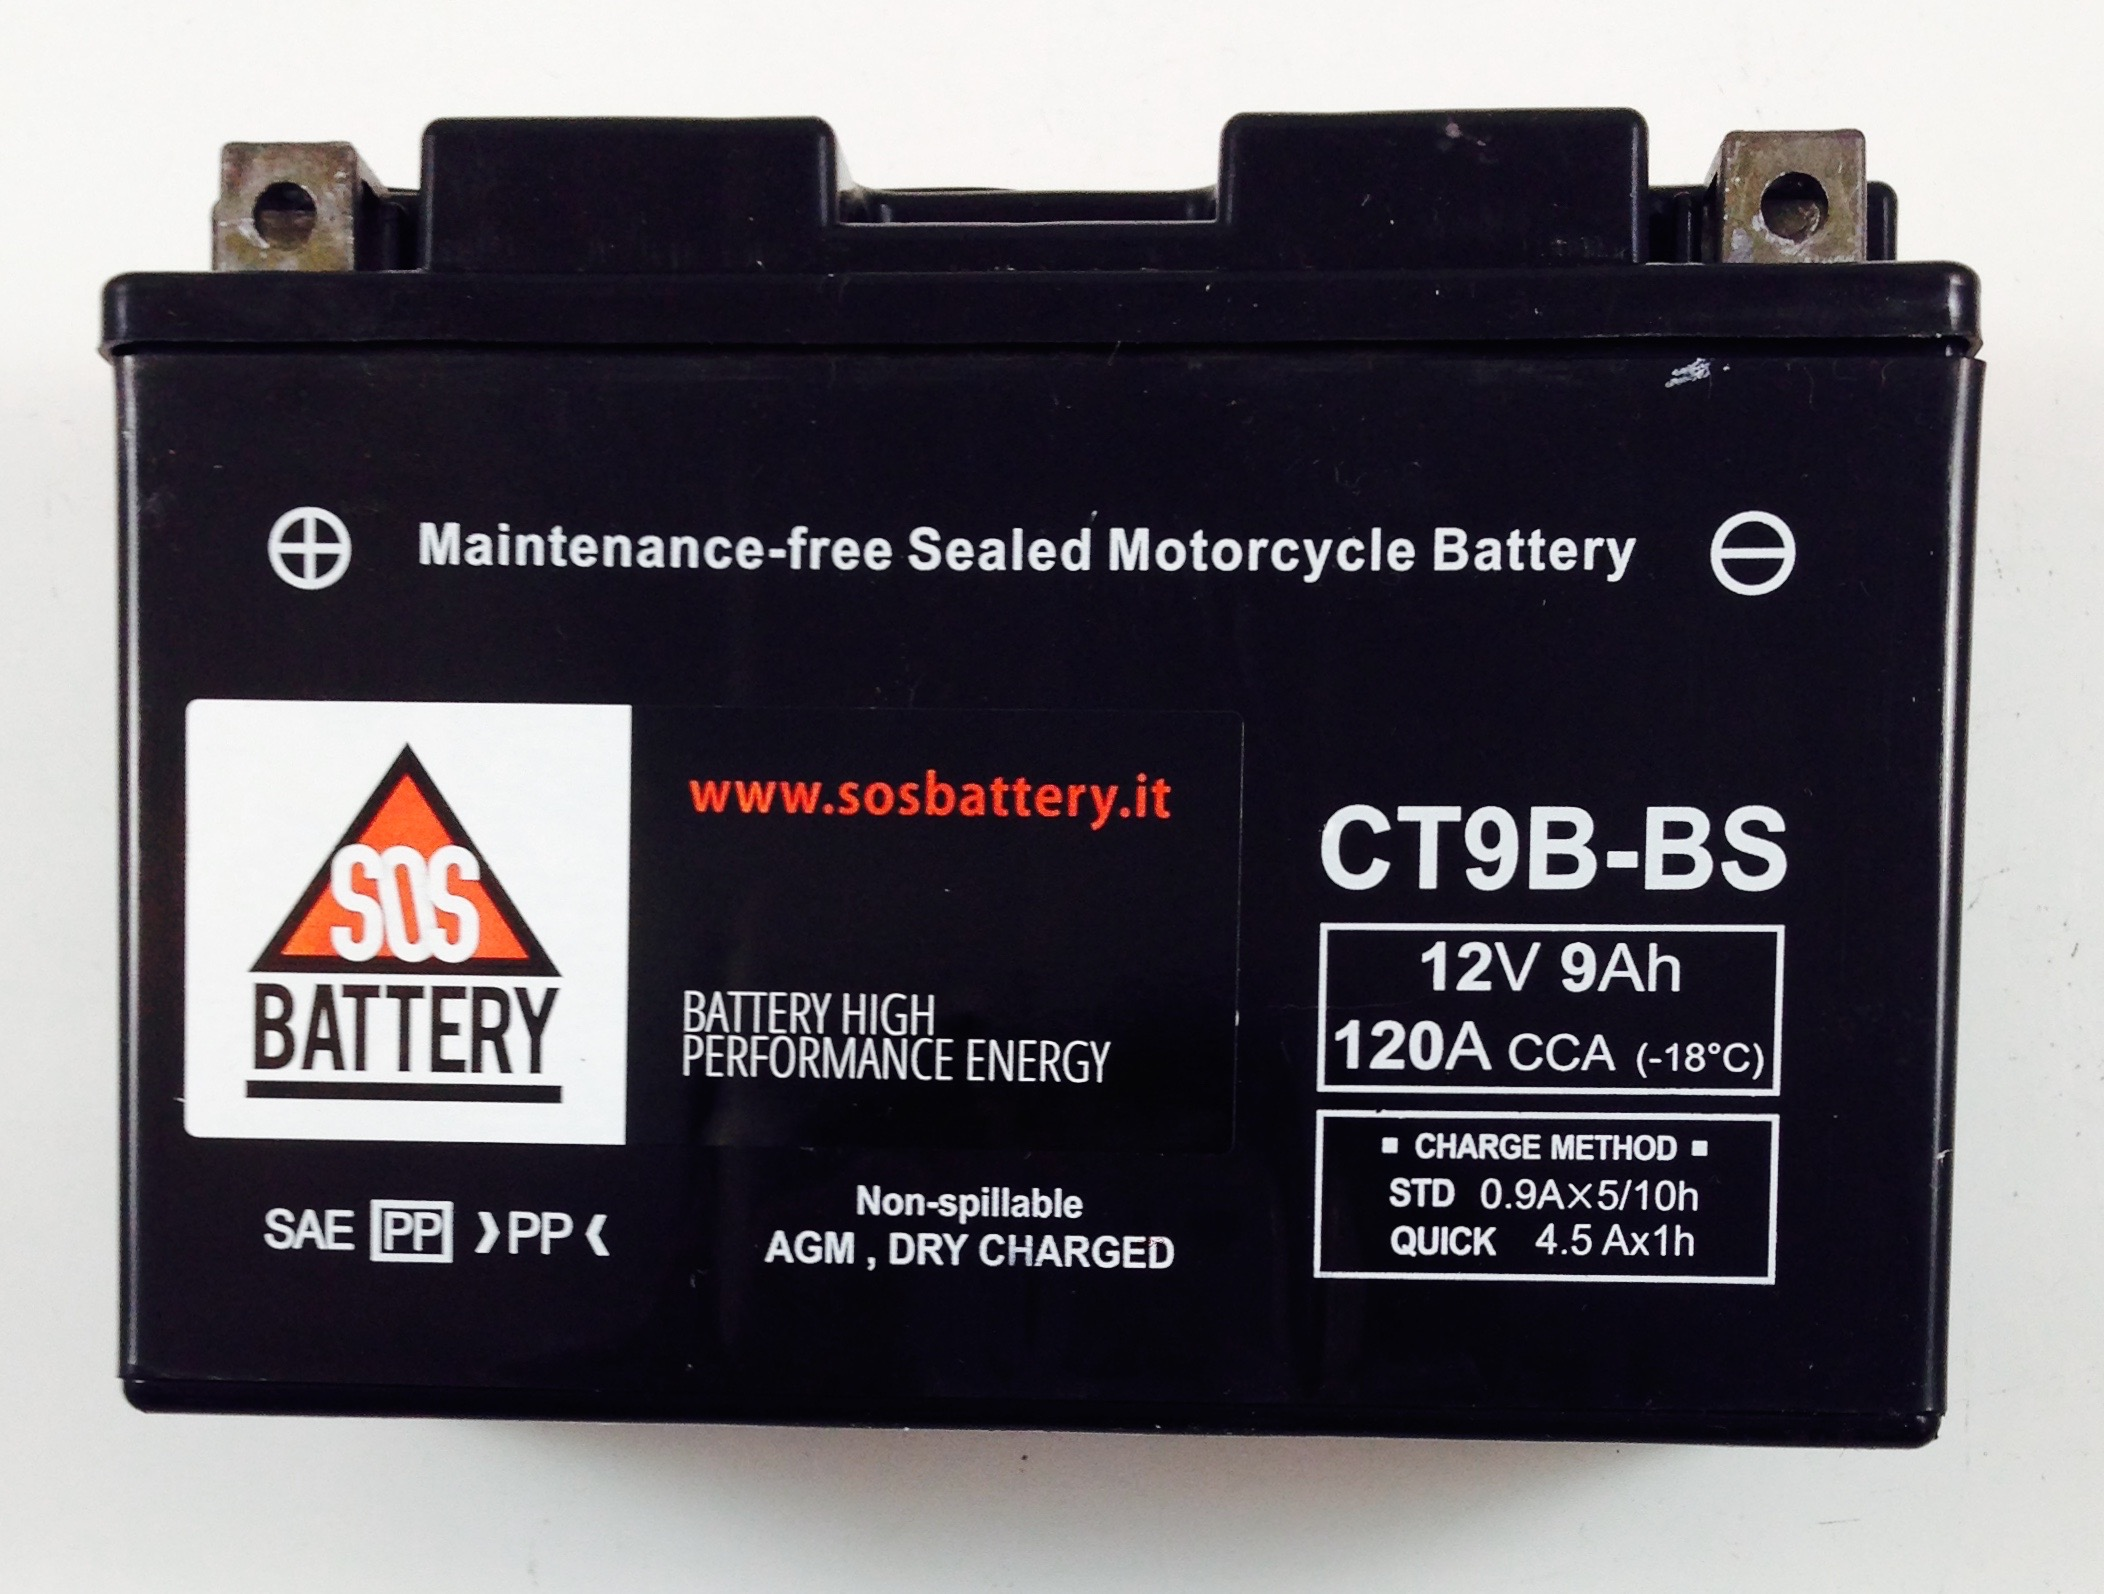 BATTERIA MOTO-SCOOTER SOS BATTERY 12V 9AH BM 302/A SIGILLATA